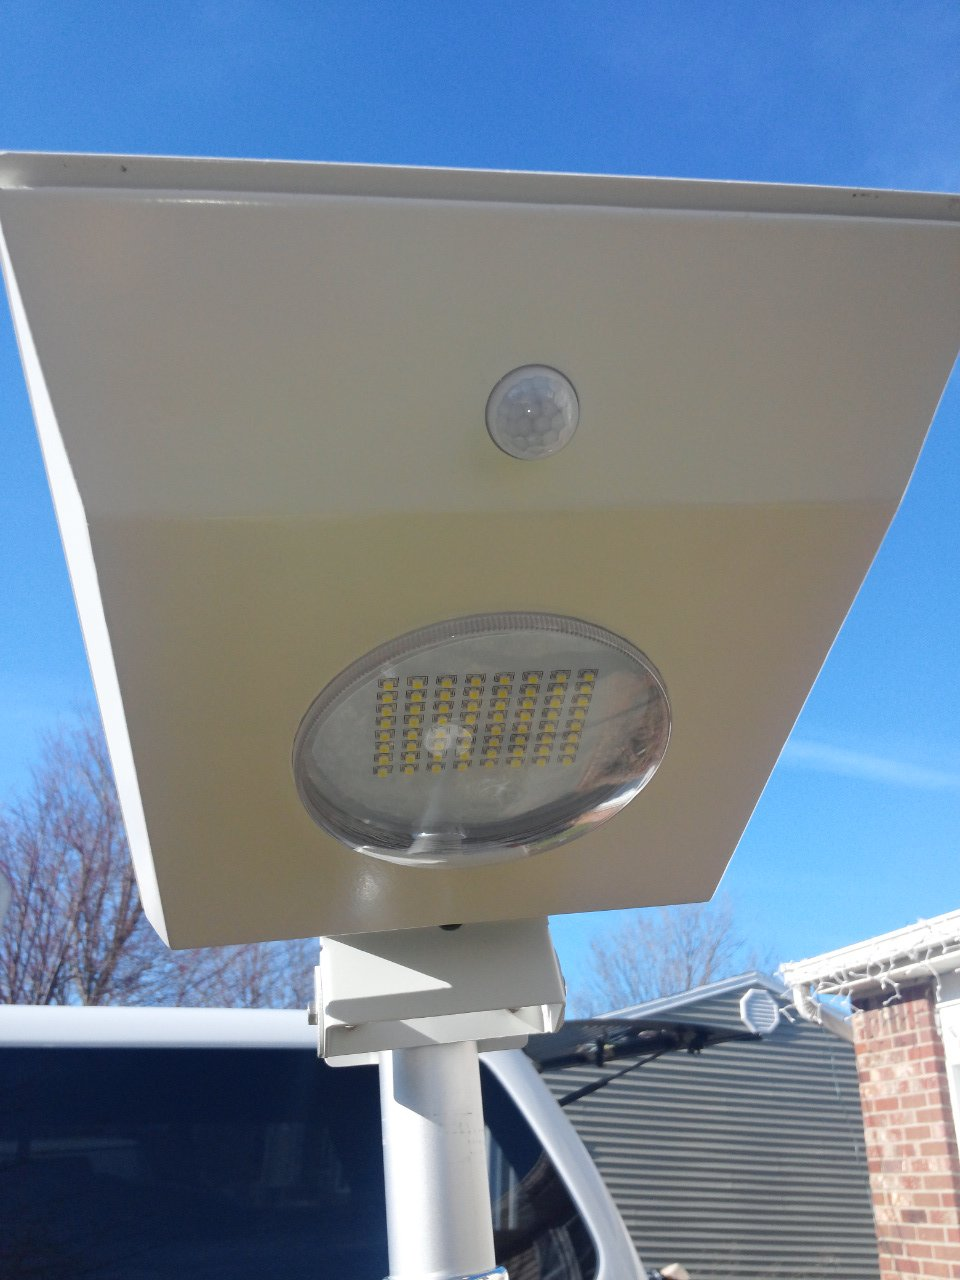 ALL IN ONE SOLAR SECURITY STREET-POST-WALL-GARDEN LIGHT High output LED's AUTOMATIC 10-12HRS by PolePalUSA